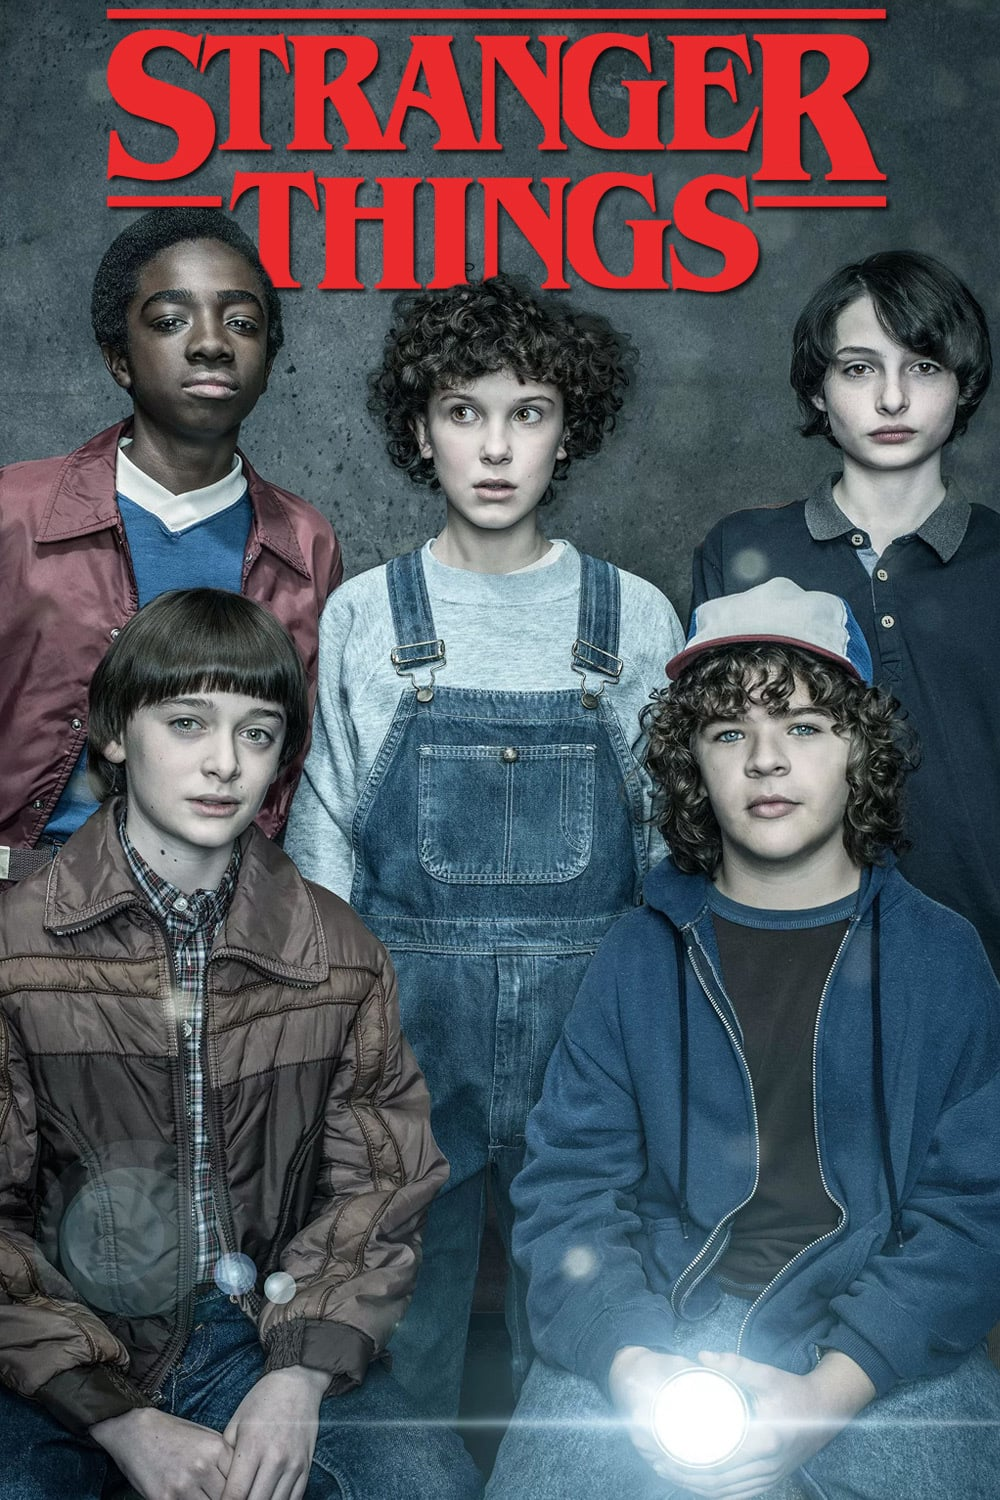 Stranger Things rating